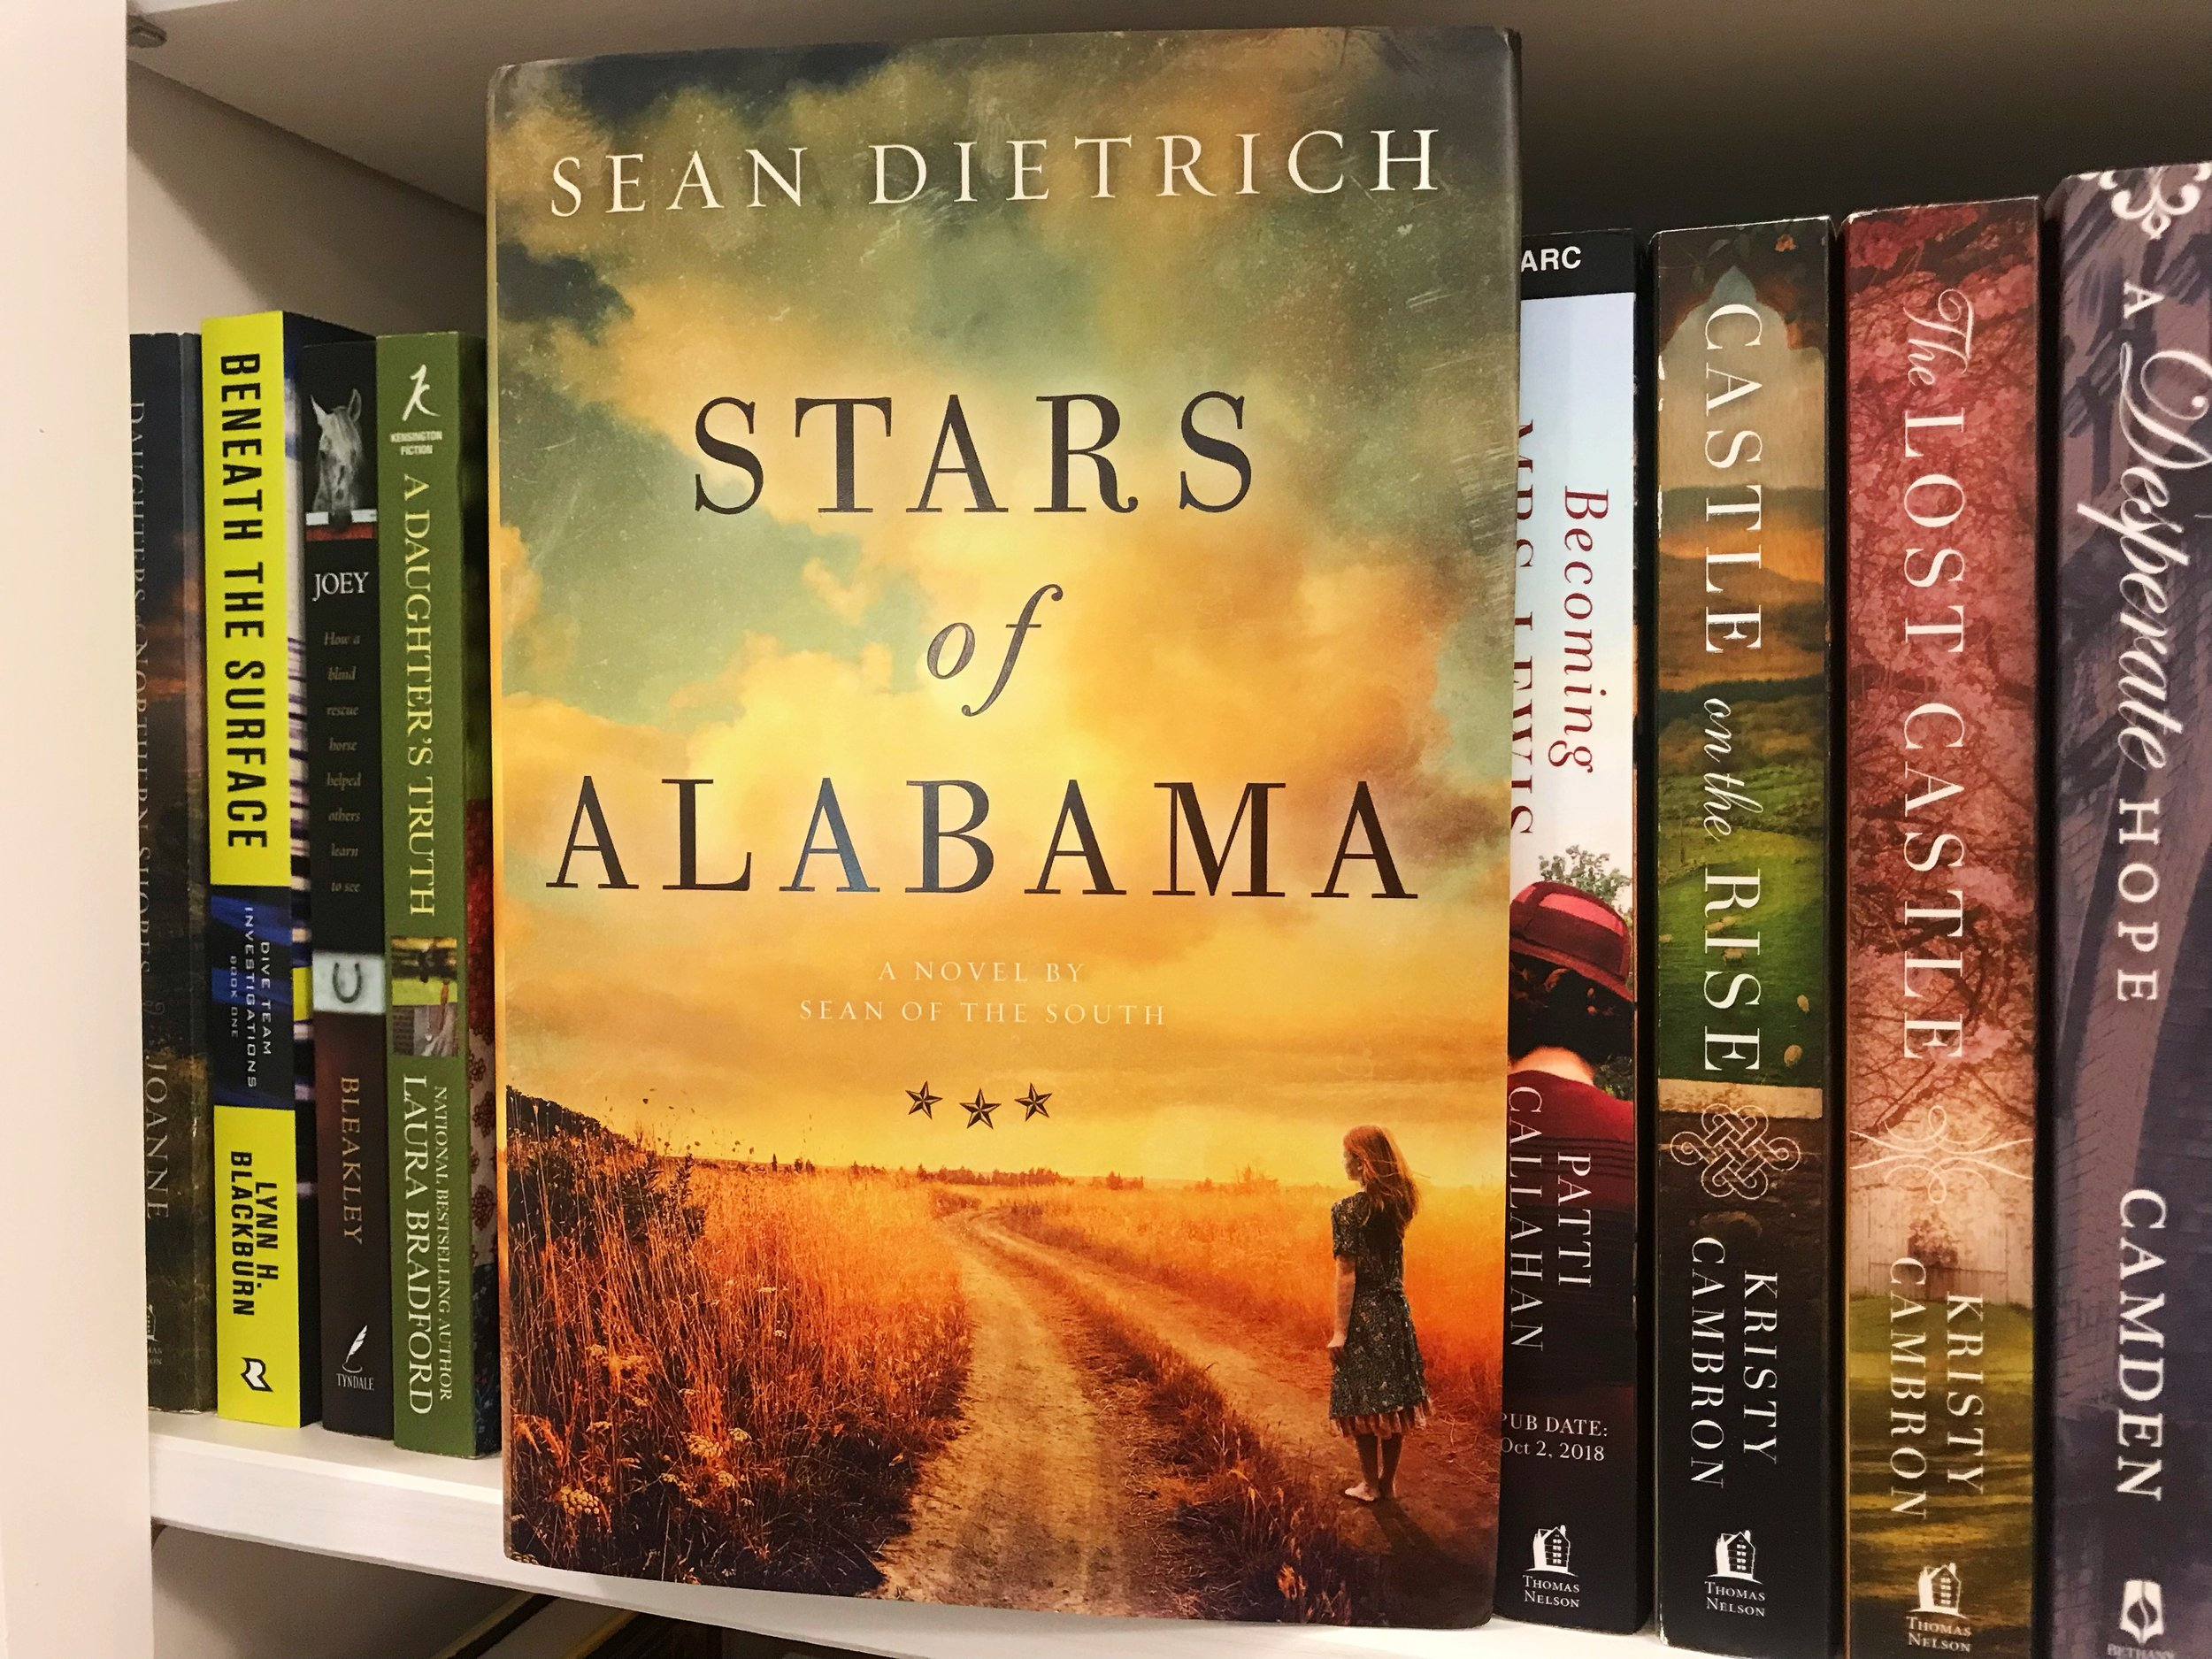 stars of alabama sean dietrich book review